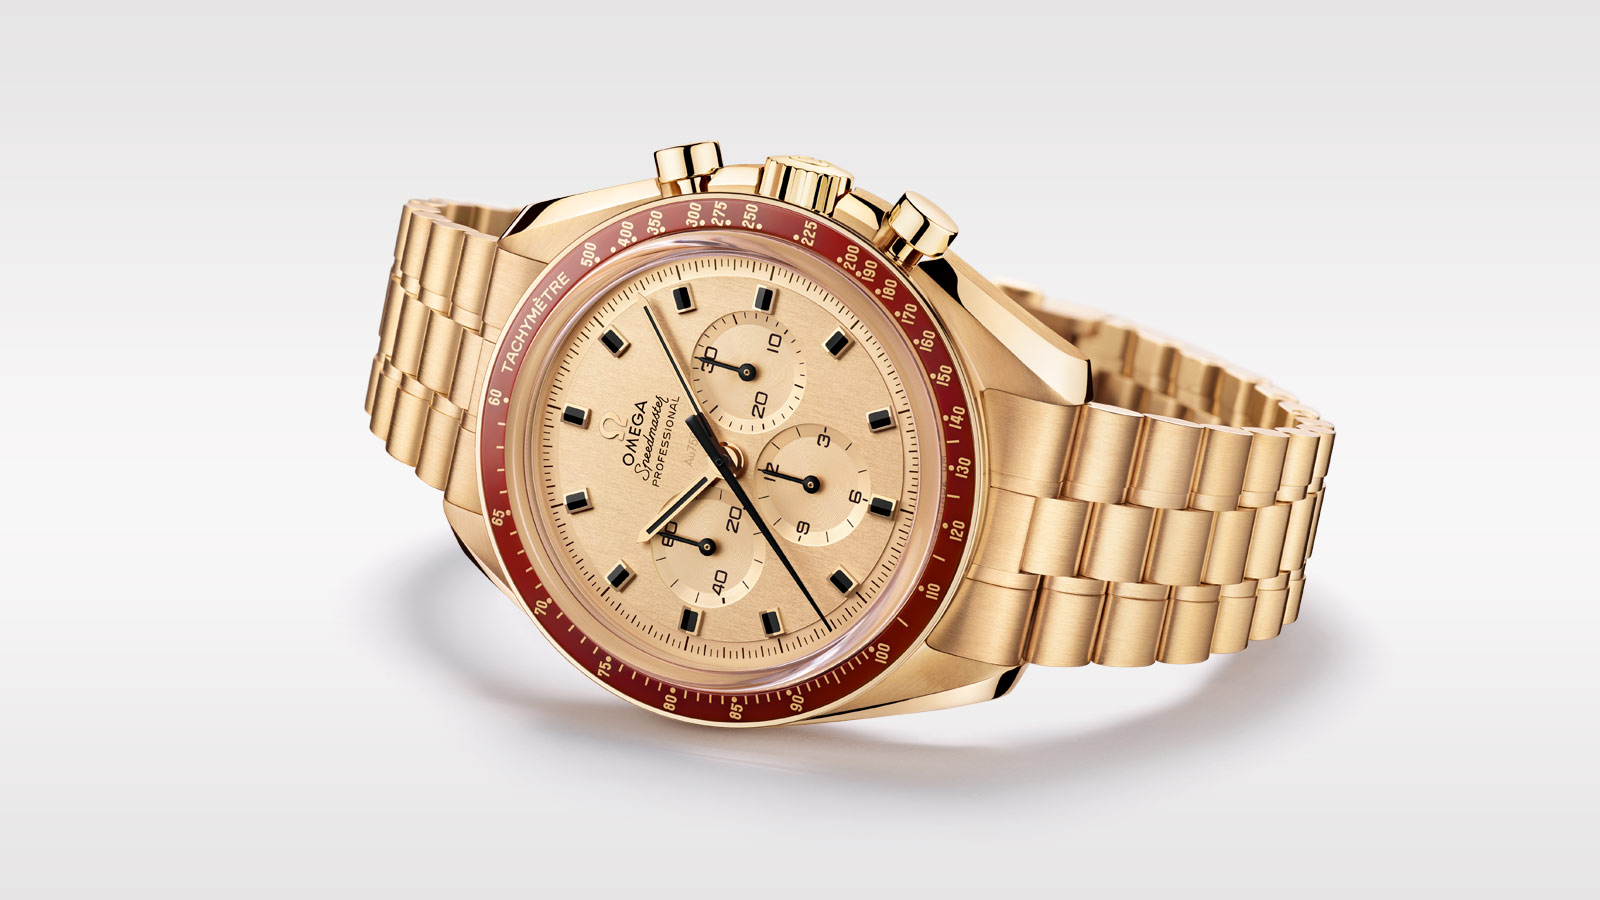 A Speedmaster in gold for Apollo 11  - Slide 3 - 61854